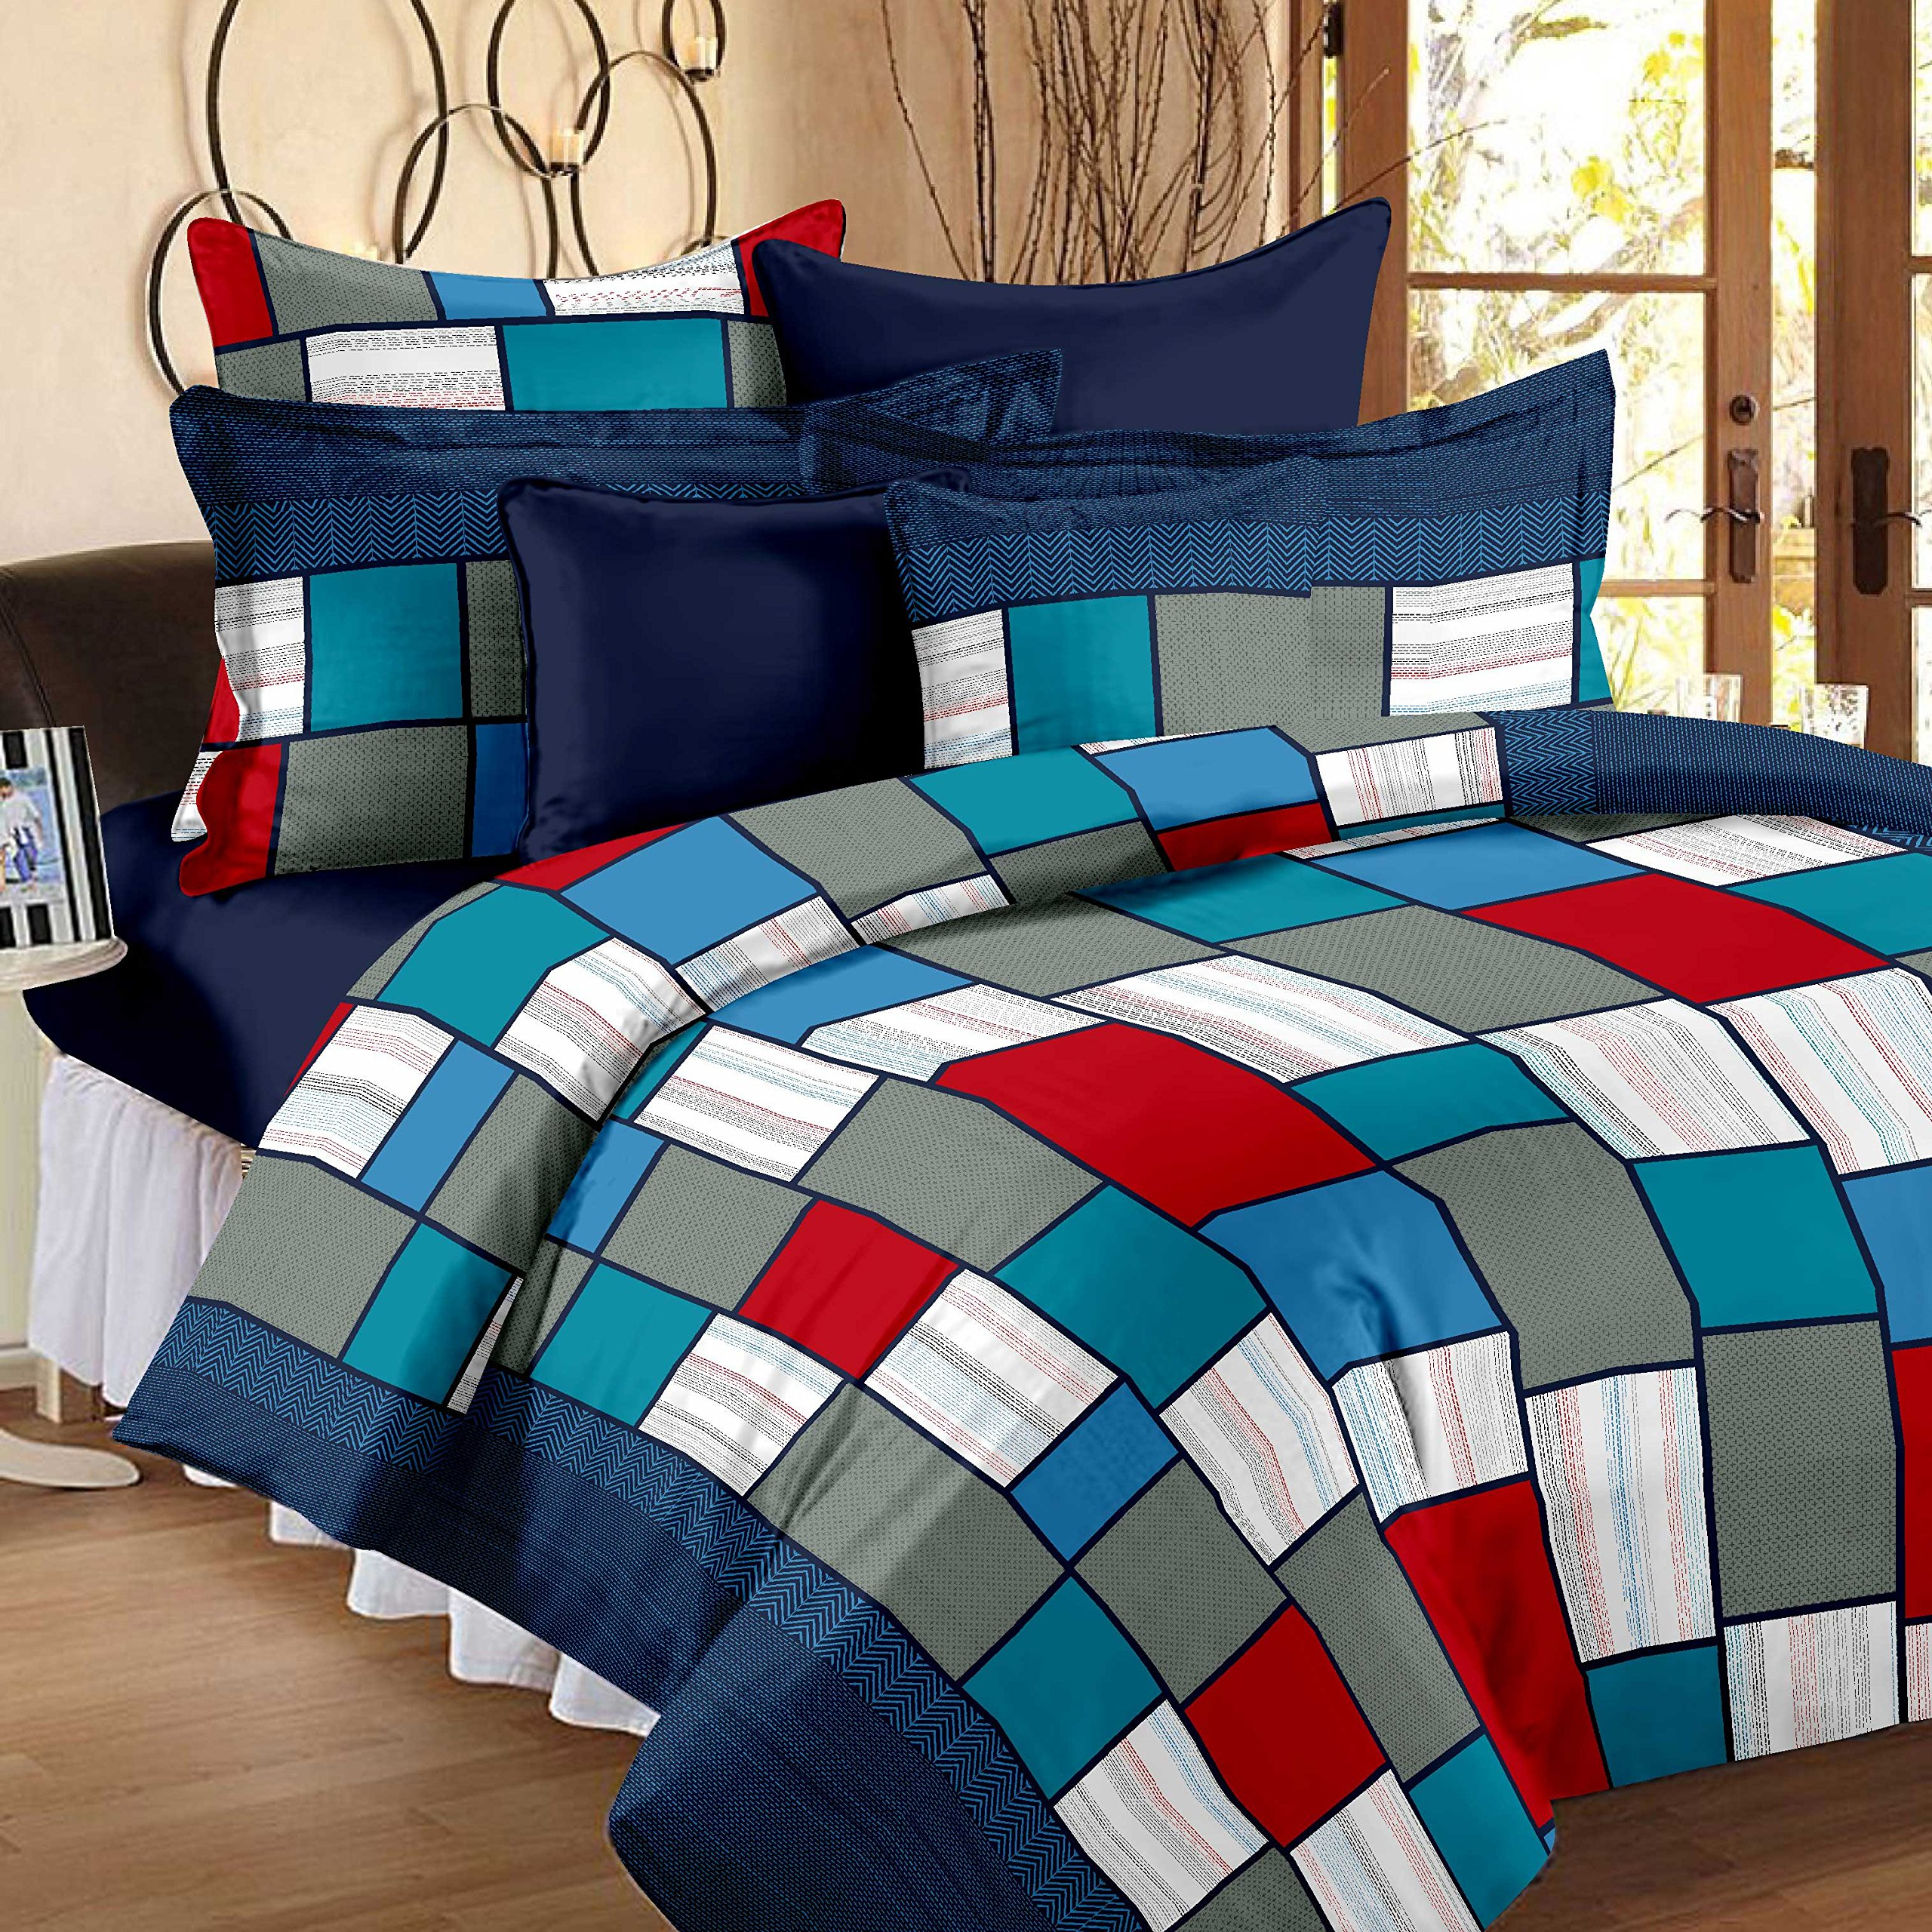 Bed Sheets By Pattern